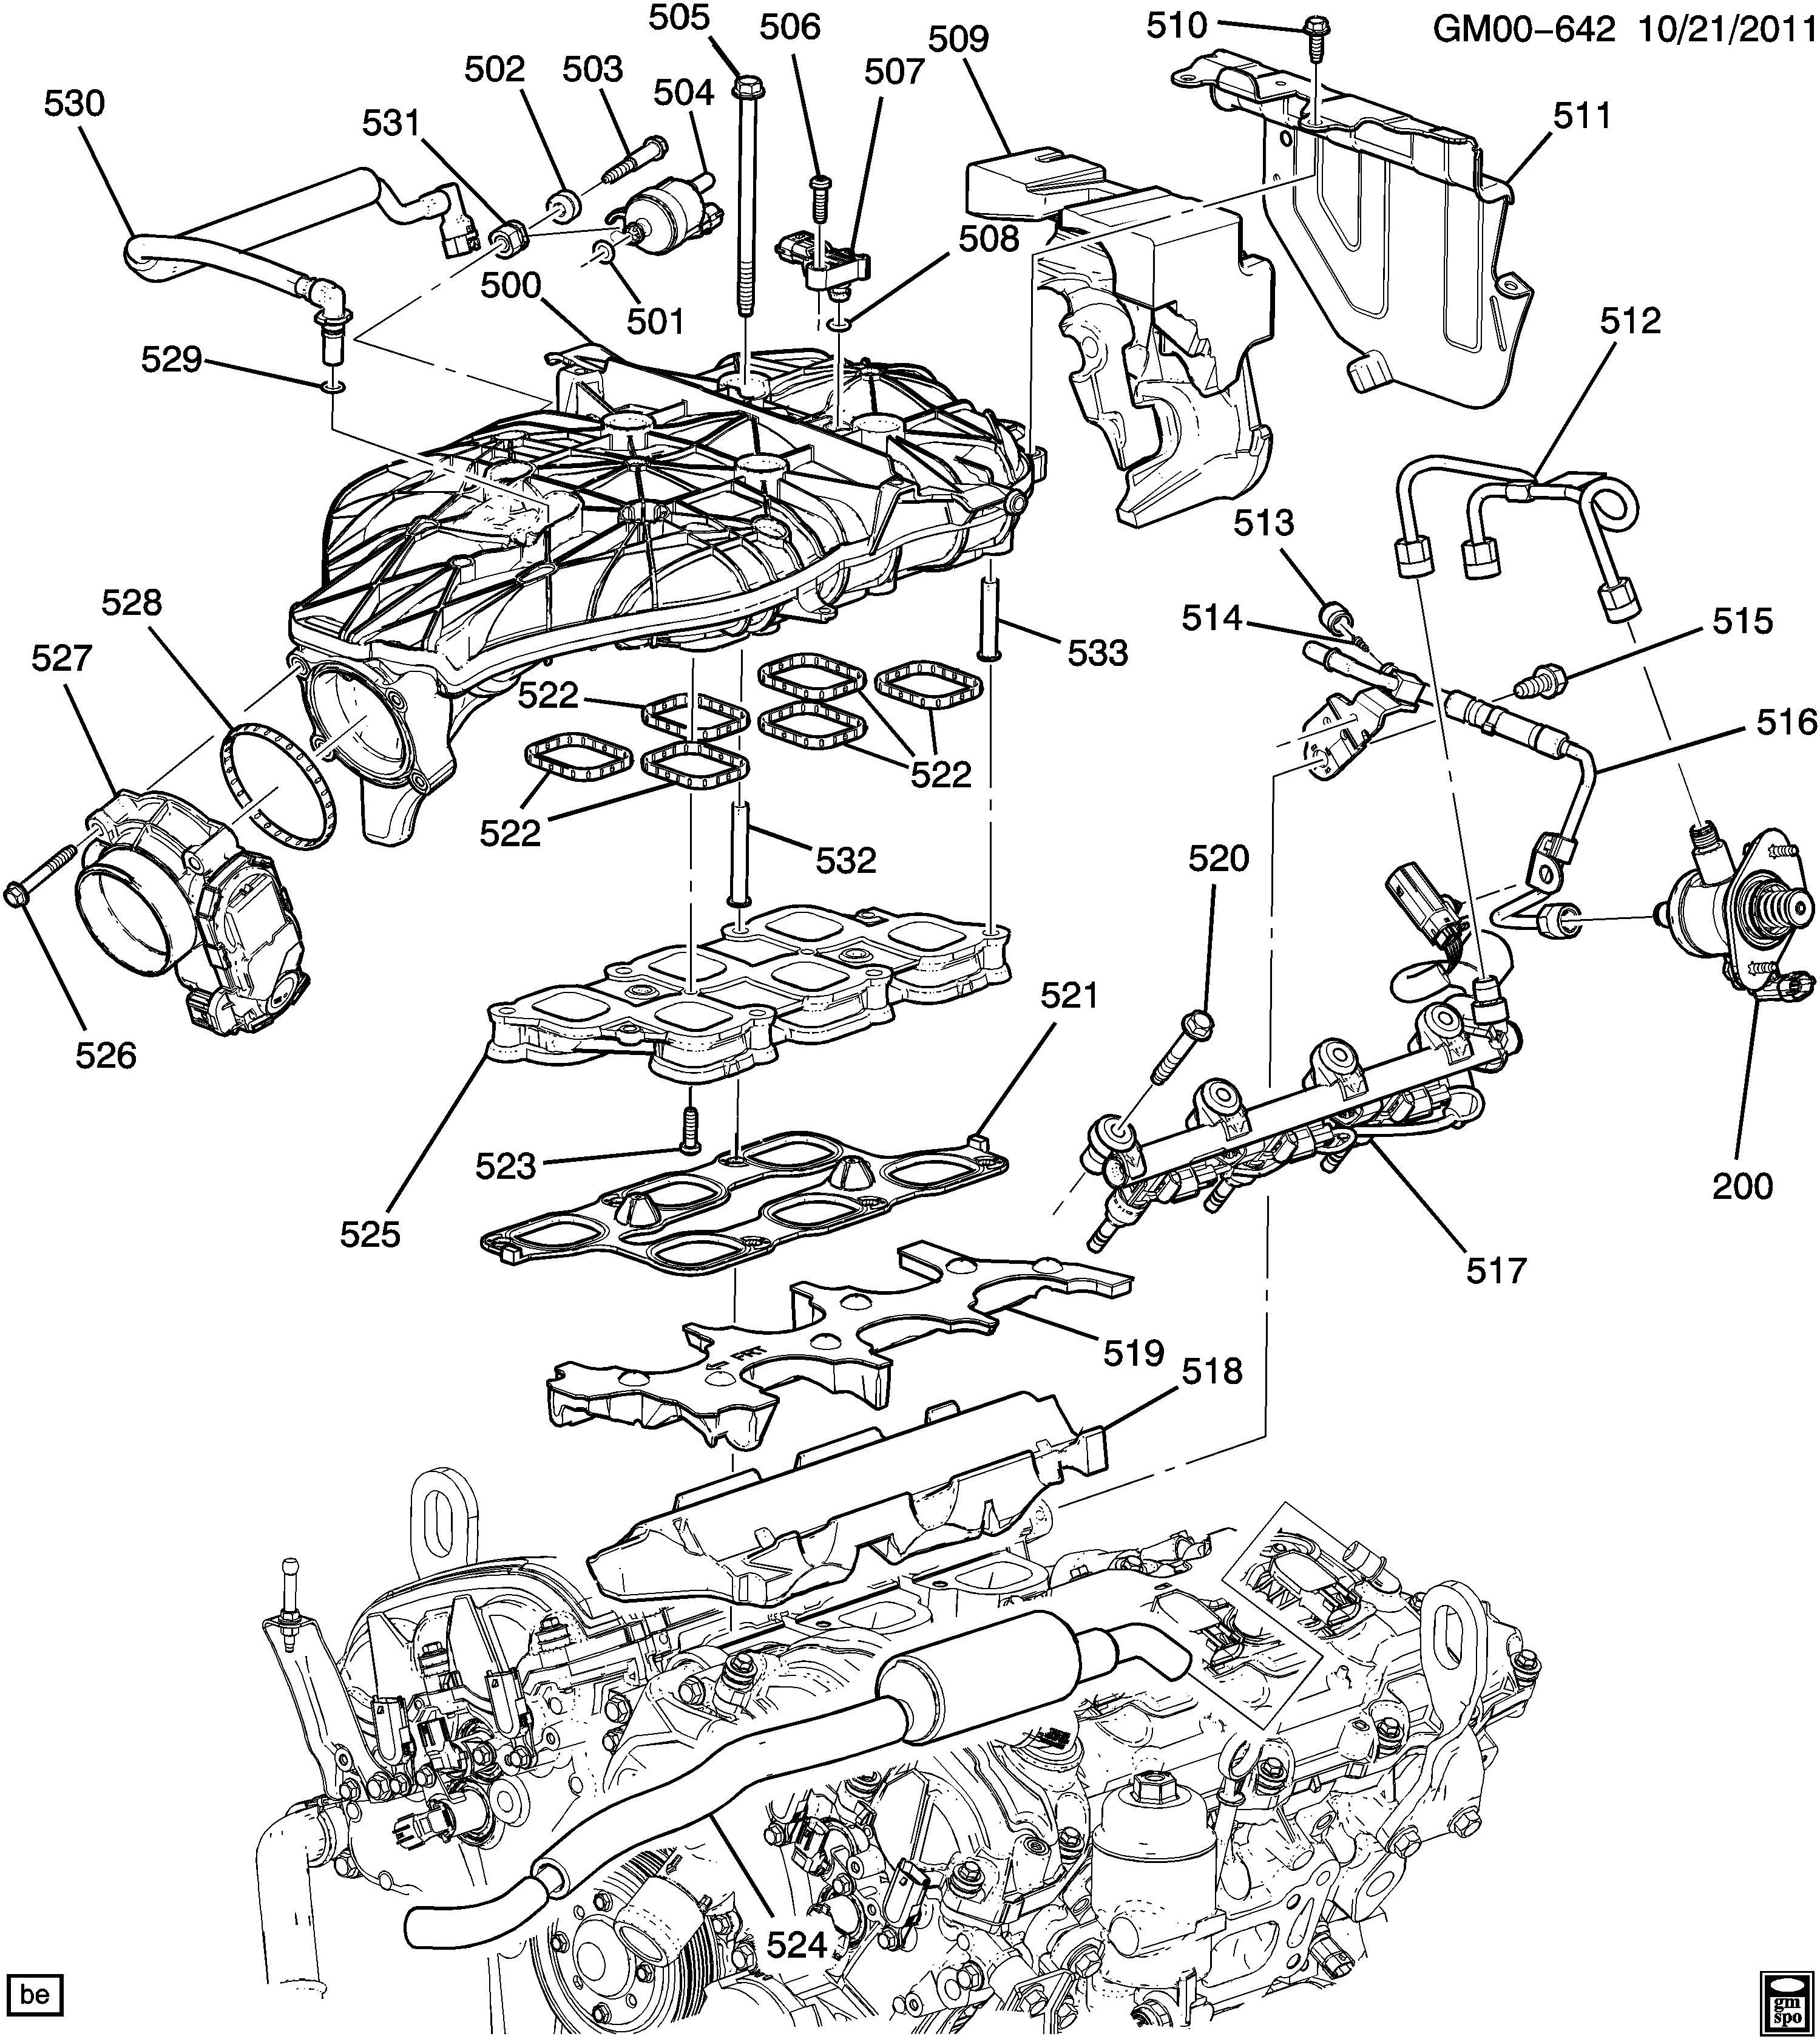 Camaro Engine Diagram | Wiring Diagram on 95 nissan maxima wiring diagram, 95 jeep wrangler wiring diagram, 95 geo metro wiring diagram, 95 nissan pathfinder wiring diagram, 95 mitsubishi mirage wiring diagram, 95 honda civic wiring diagram, 95 ford taurus wiring diagram, 95 jeep cherokee wiring diagram, 95 geo prizm wiring diagram, 95 toyota tacoma wiring diagram, 95 buick riviera wiring diagram, 95 buick century wiring diagram, 95 pontiac grand prix wiring diagram, 95 pontiac bonneville wiring diagram, 95 mitsubishi eclipse wiring diagram, 95 chrysler lebaron wiring diagram, 95 dodge avenger wiring diagram, 95 subaru legacy wiring diagram, 95 cadillac deville wiring diagram, 95 buick lesabre wiring diagram,